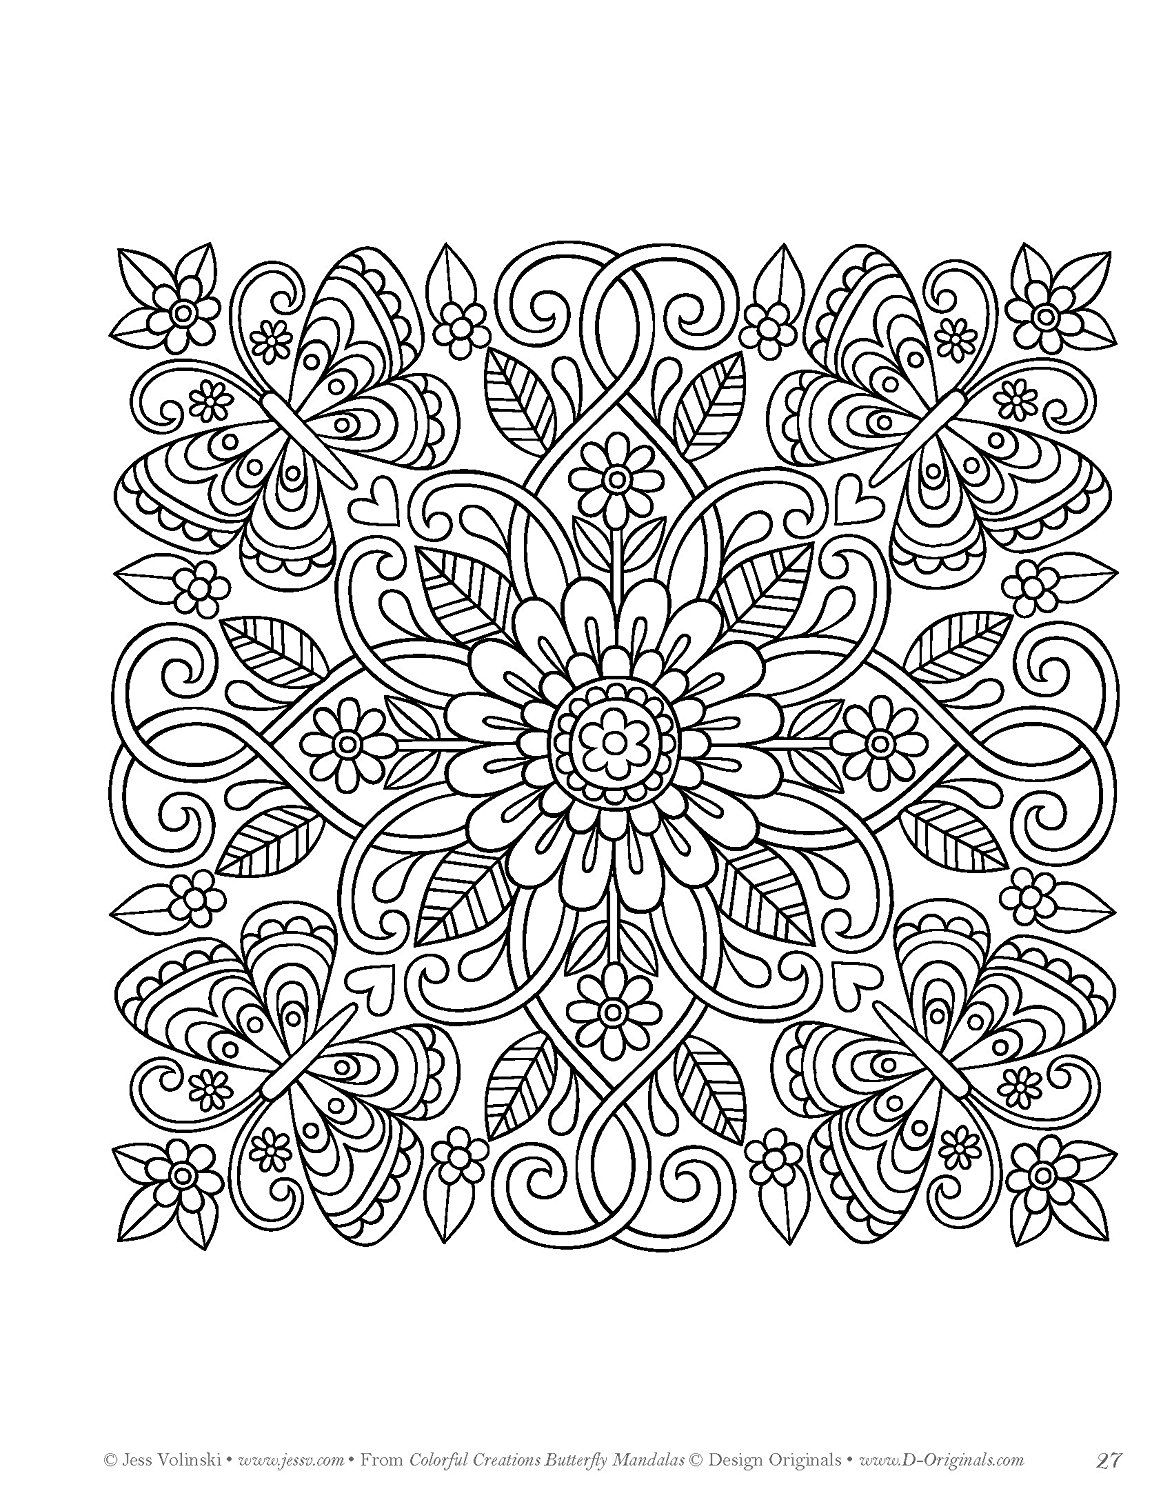 Colorful Creations Butterfly Mandalas Coloring Book Pages Designed To Inspire Creativity Pattern Coloring Pages Butterfly Coloring Page Mandala Coloring Pages